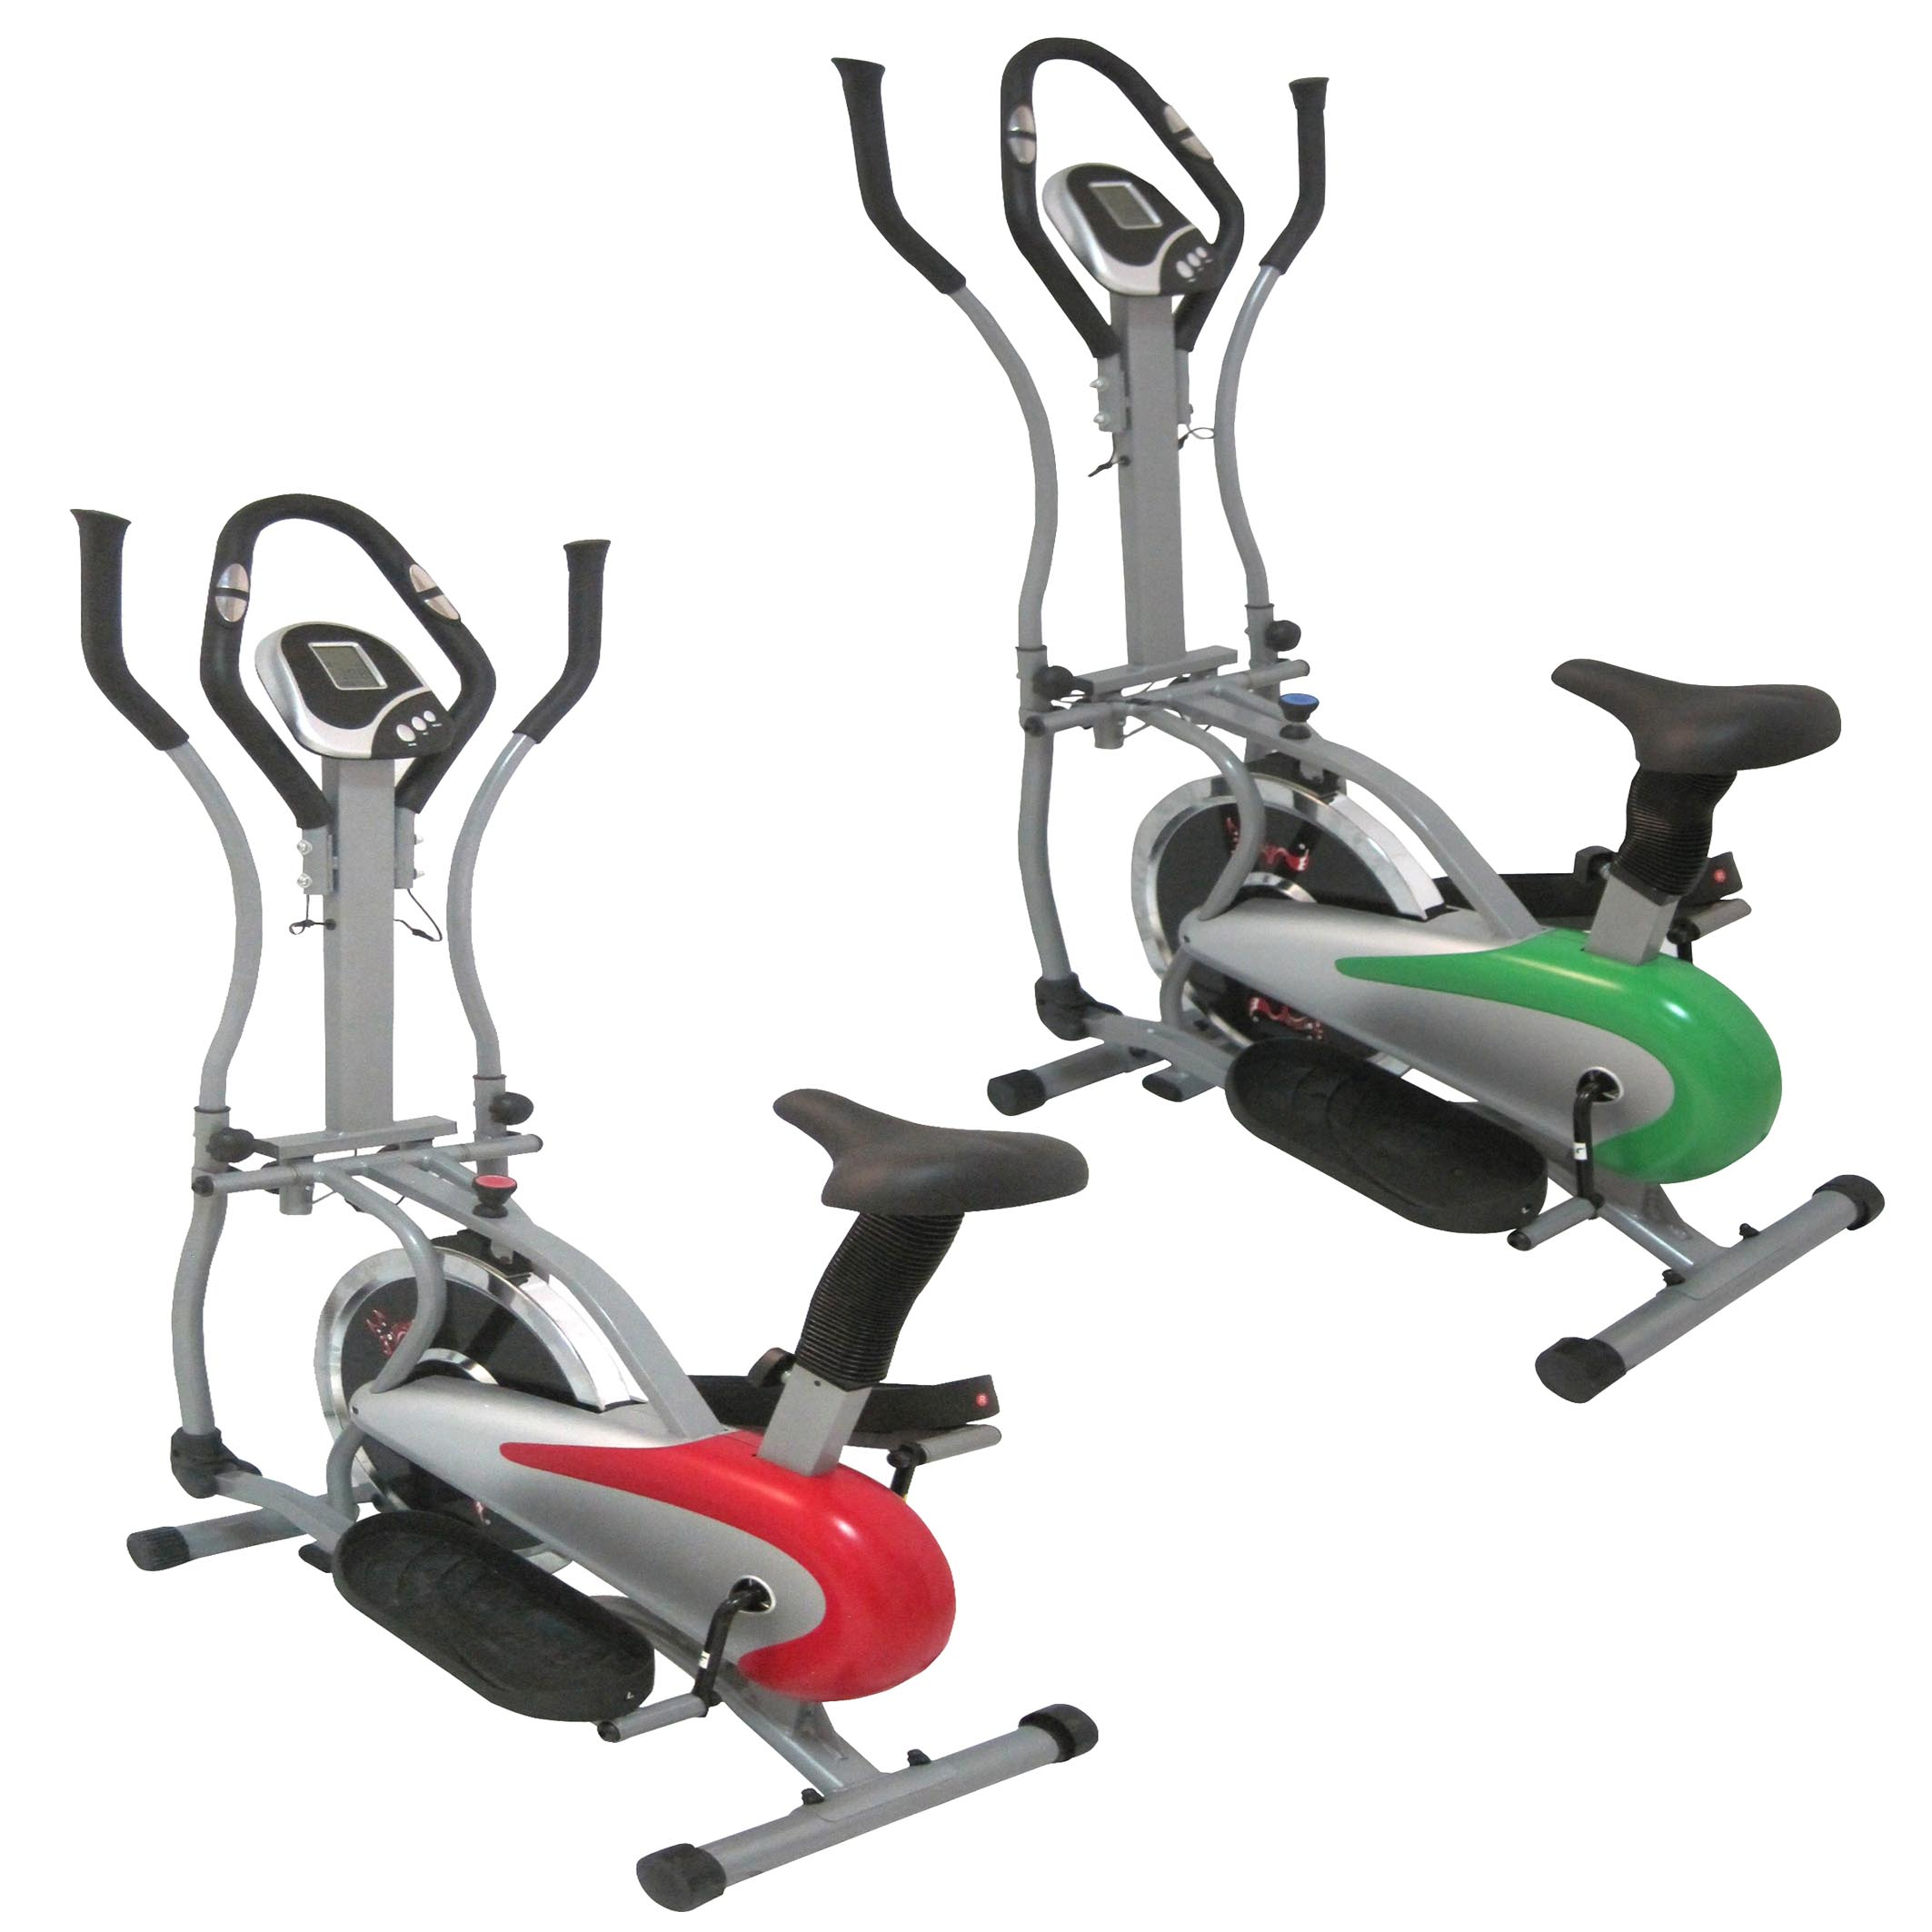 FoxHunter Elliptical Cross Trainer Exercise Bike Fitness Cardio Body Workout Gym